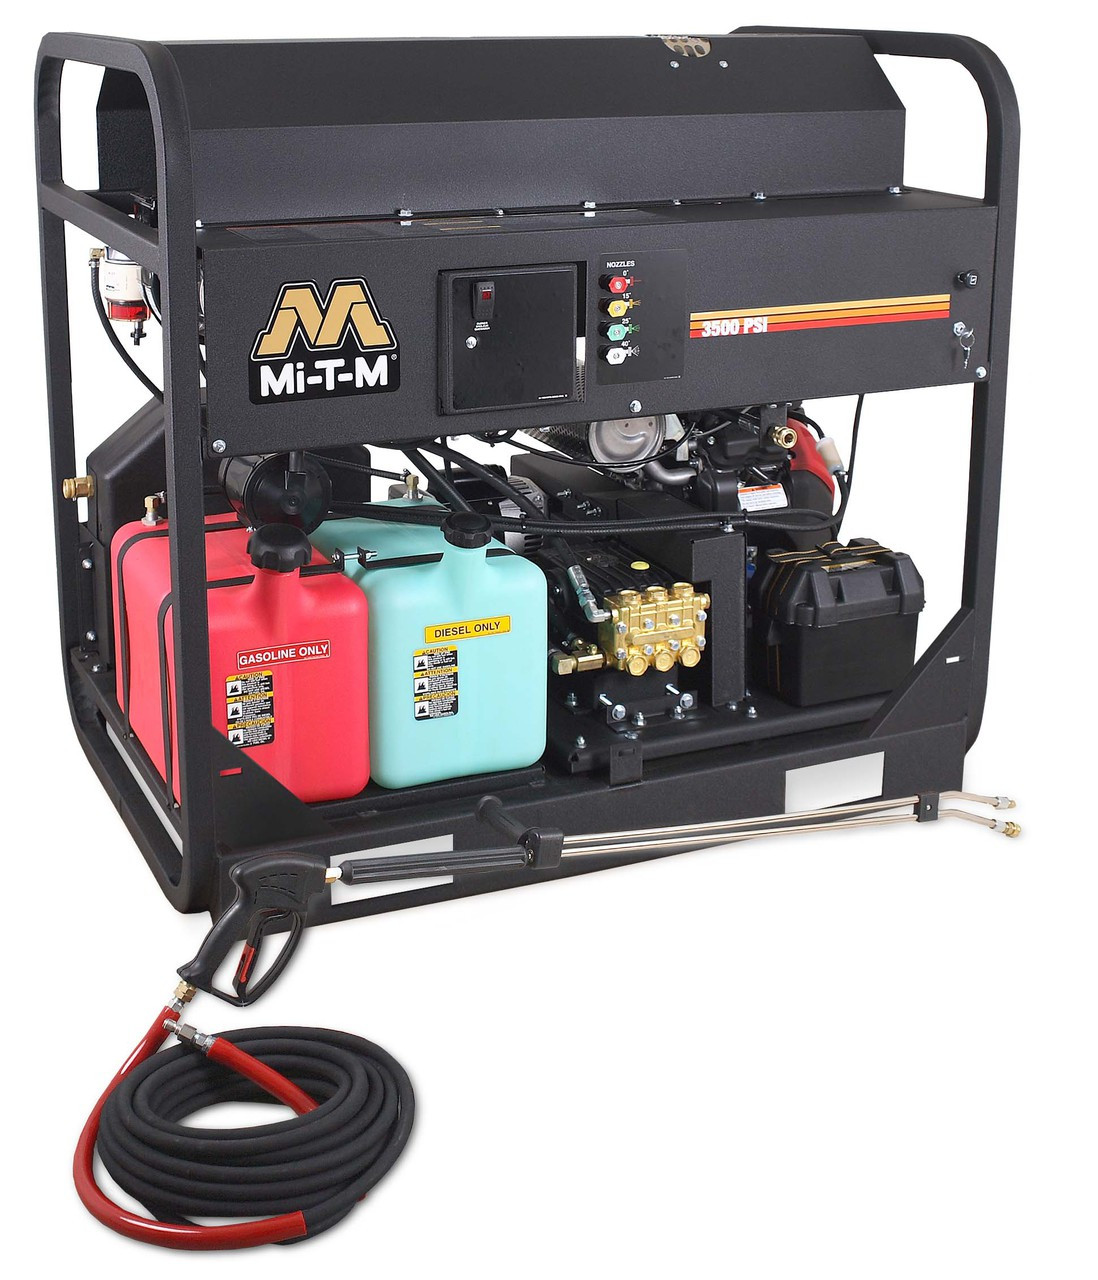 medium resolution of mi t m wiring diagram wiring library mi t m hs gas hot water pressure washer 3500